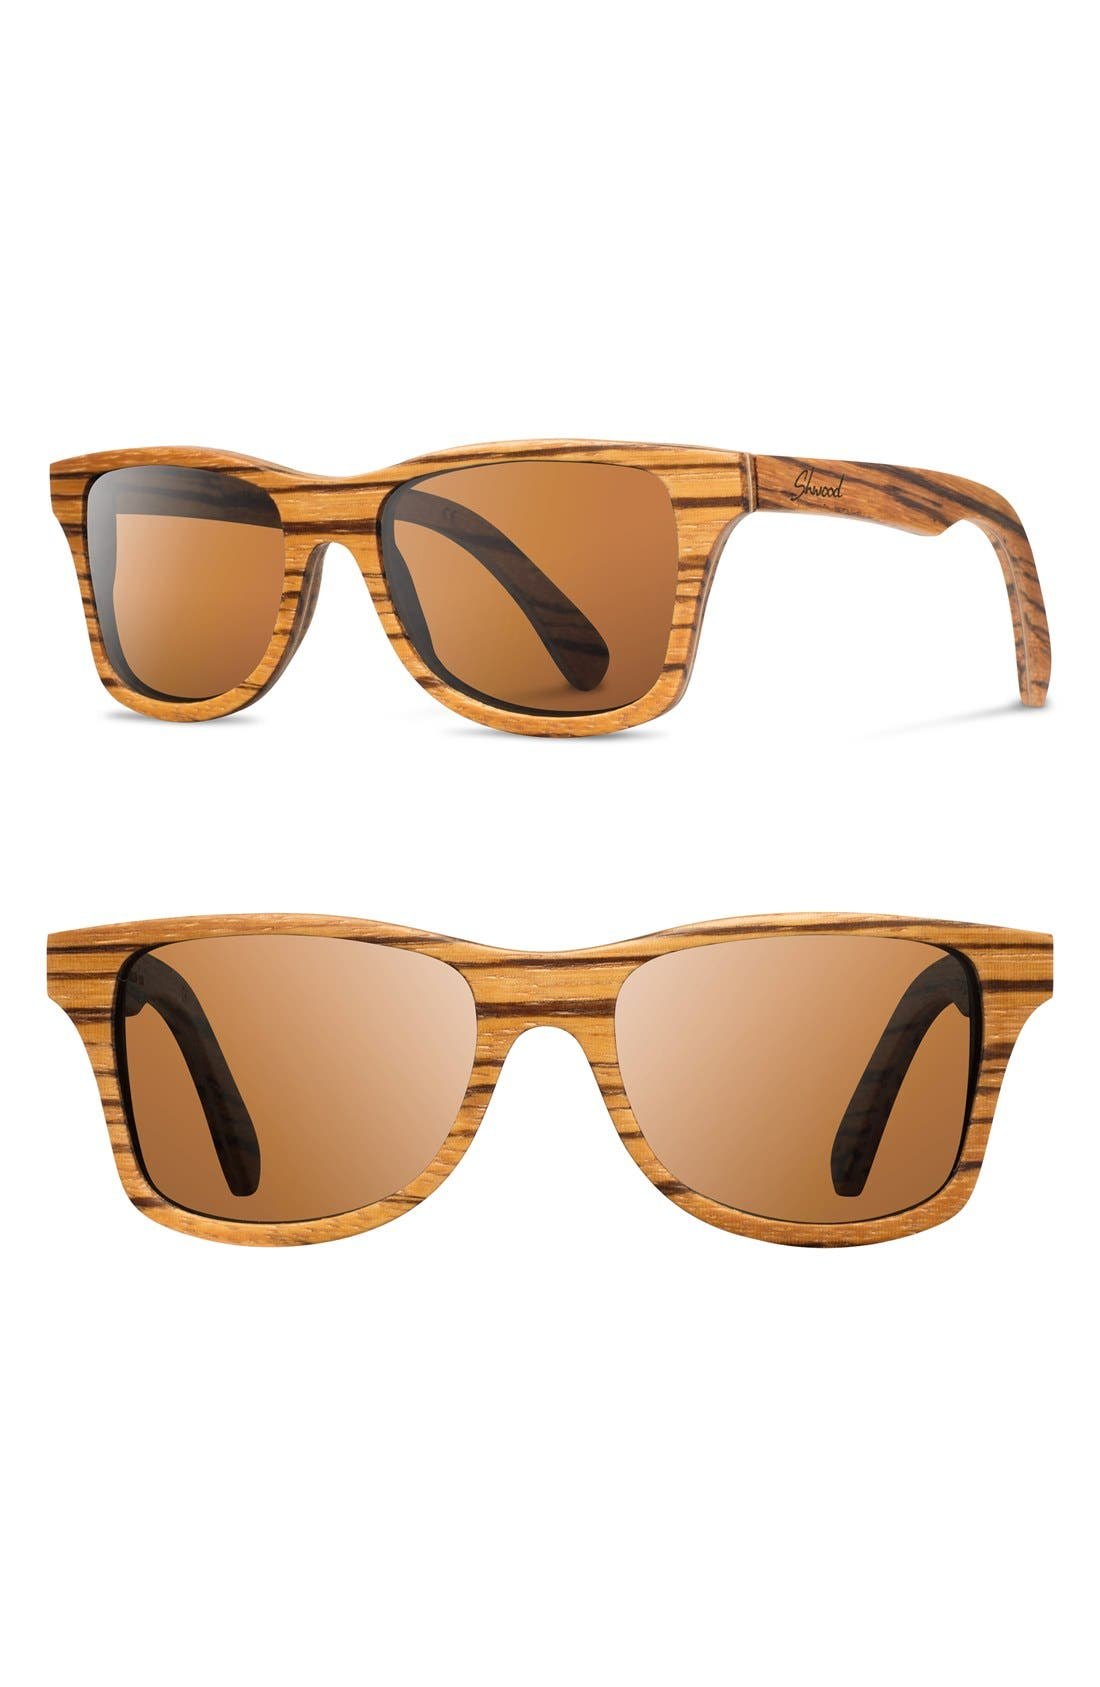 'Canby' 54mm Polarized Wood Sunglasses,                             Main thumbnail 1, color,                             200